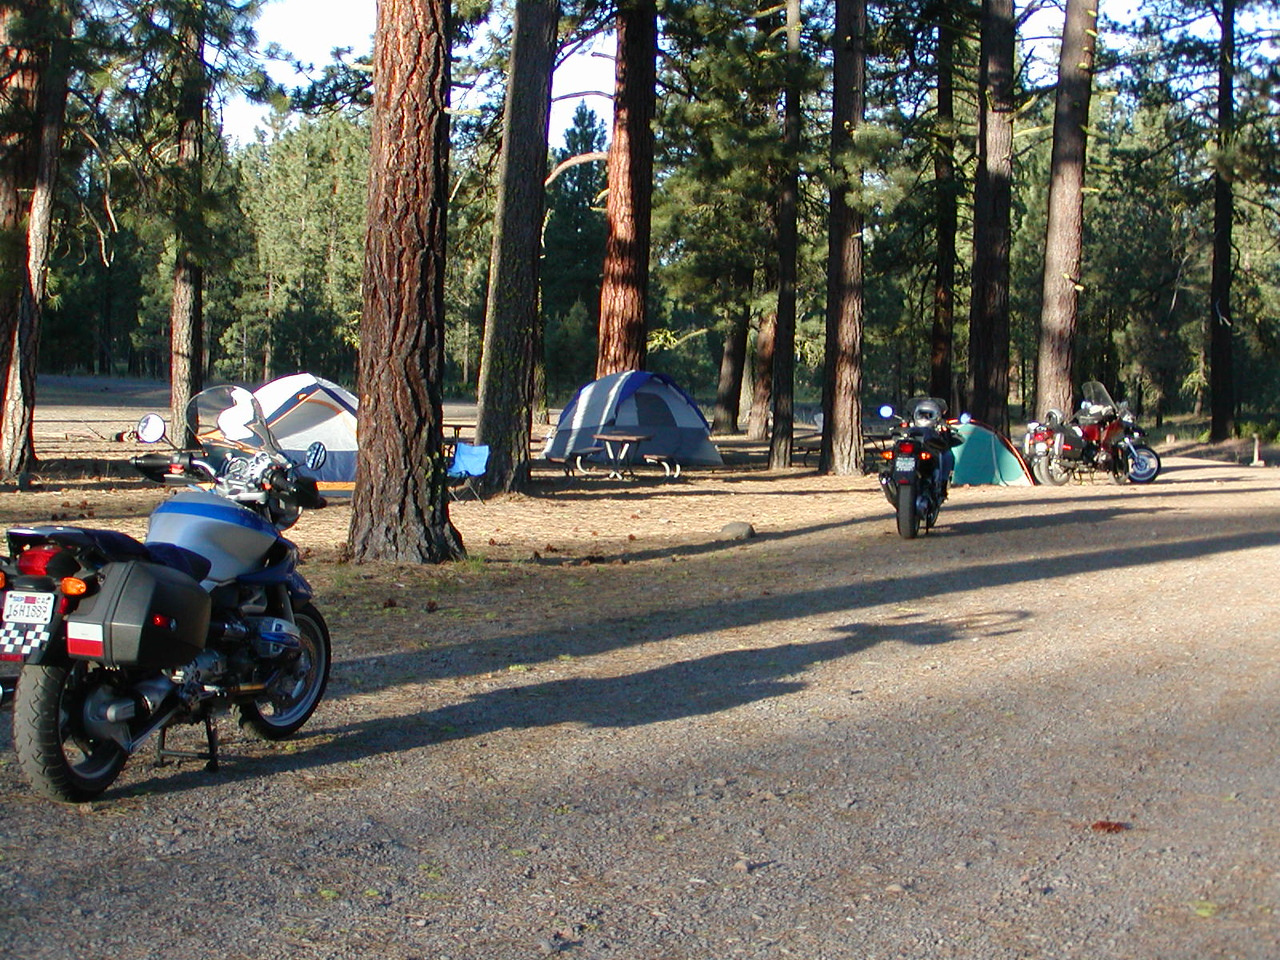 Early arrivals at the Hat Creek Campground